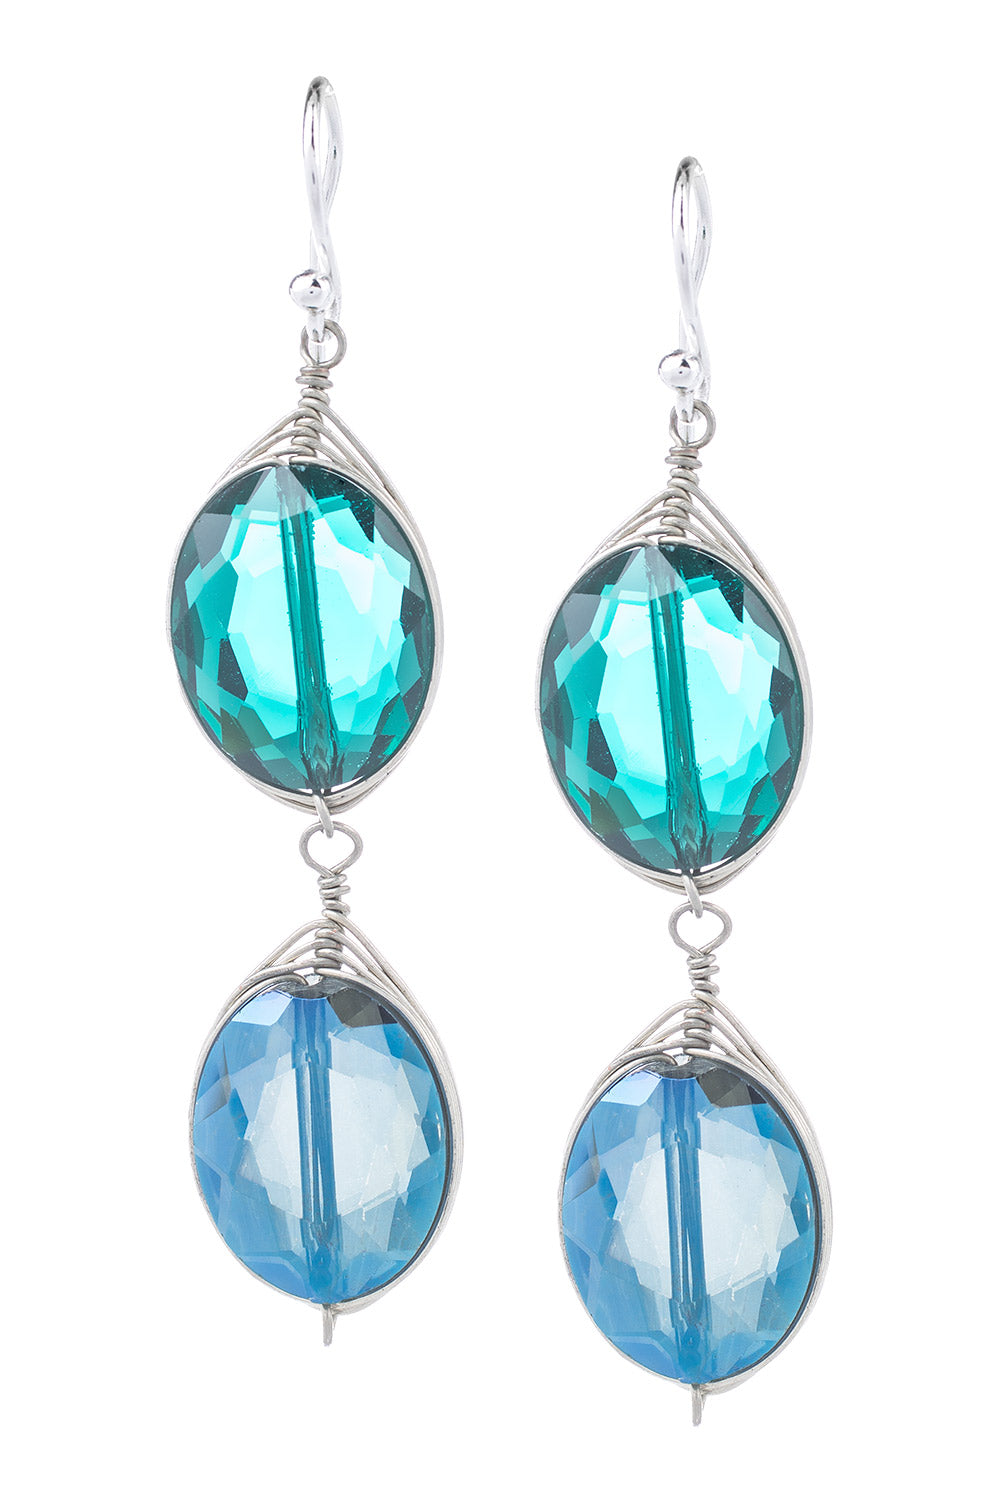 Type 2 Ocean Stones Earrings